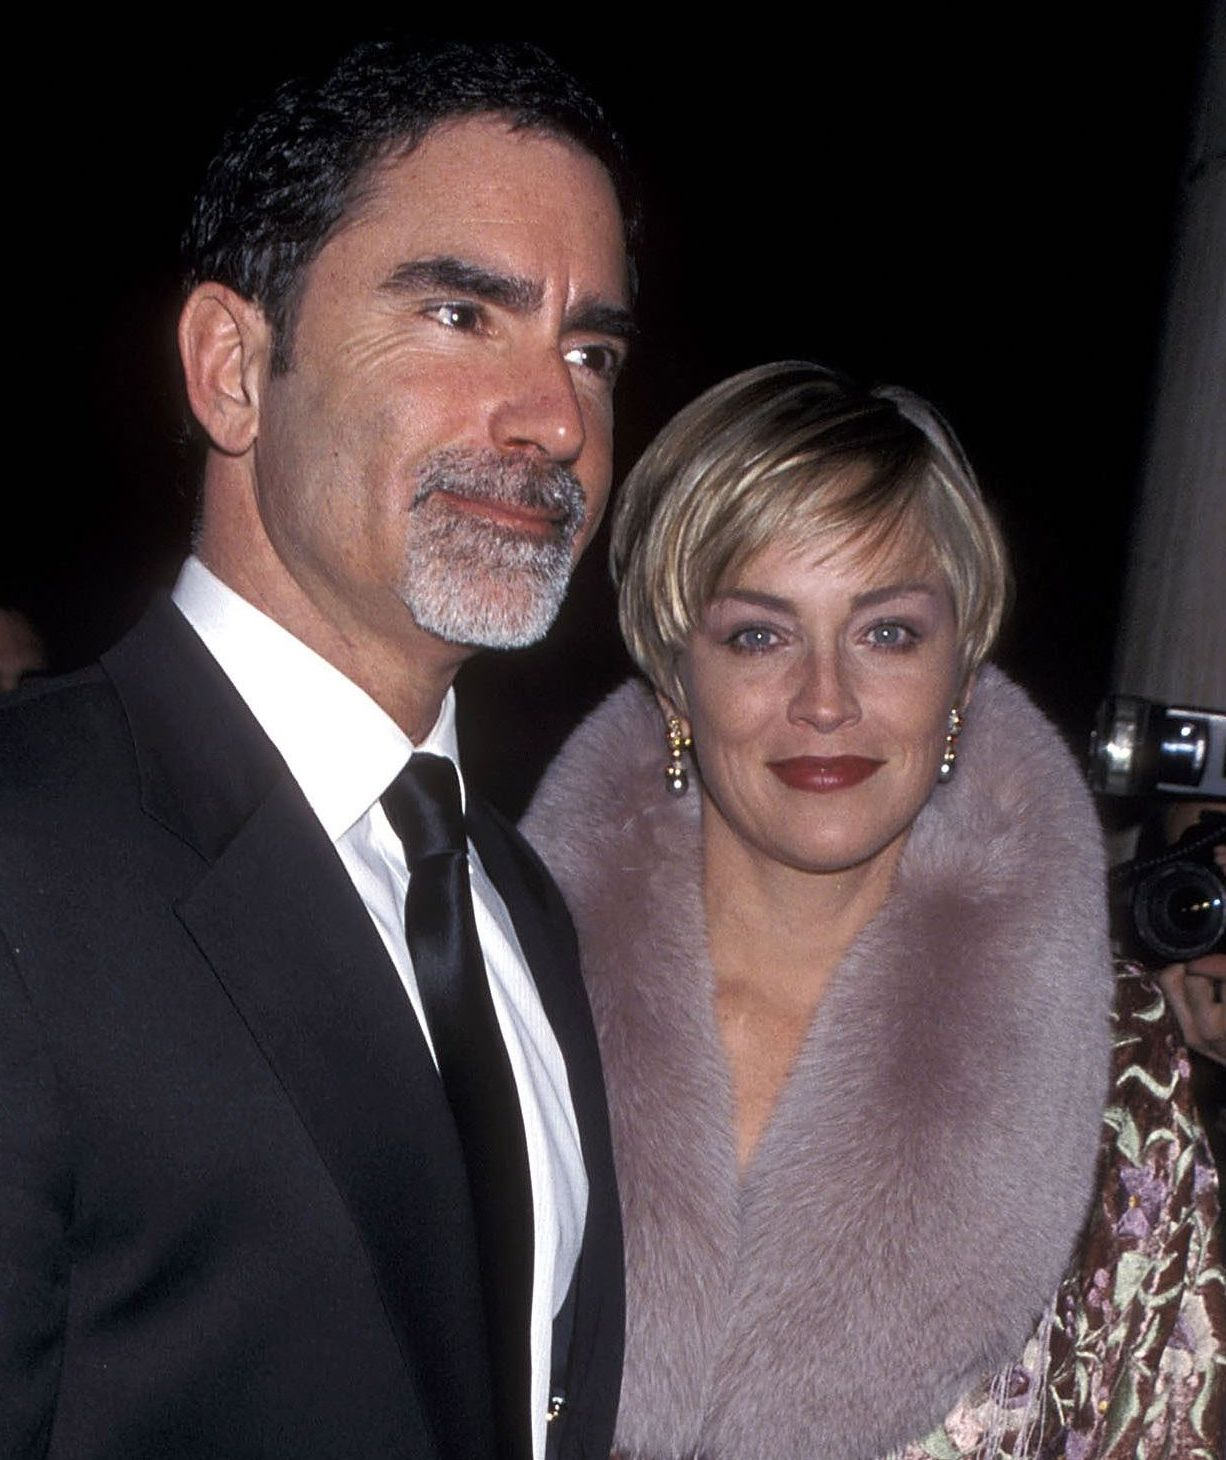 2QAXOEUy8n1mJZva3wTU 20 Things You Probably Didn't Know About Sharon Stone